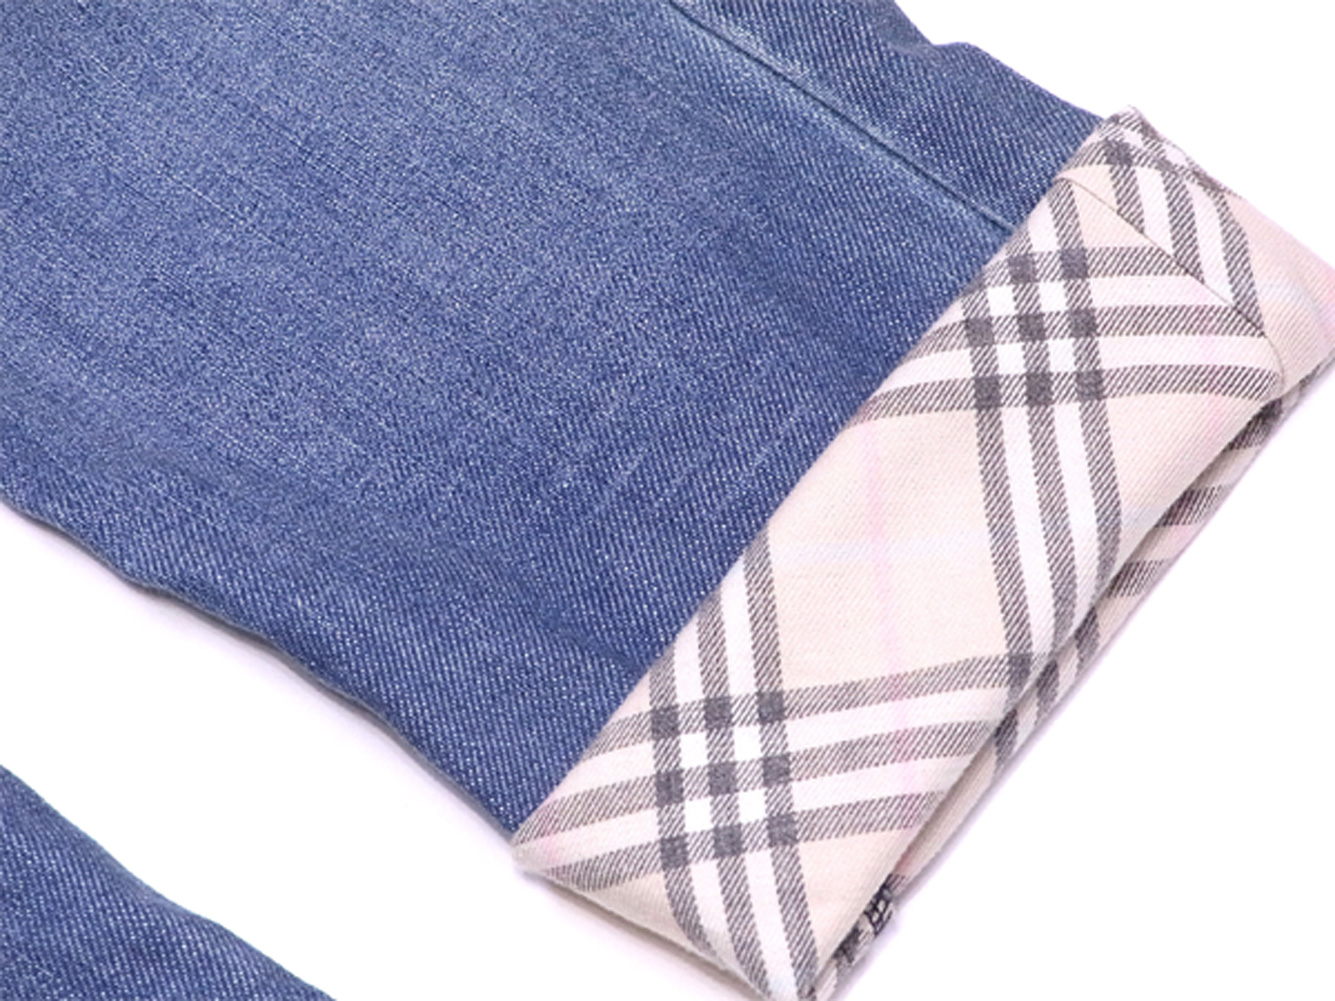 039991344e ... Burberry blue label BURBERRY BLUE LABEL jeans checked pattern roll-up  underwear Lady's ♯ 24 ...